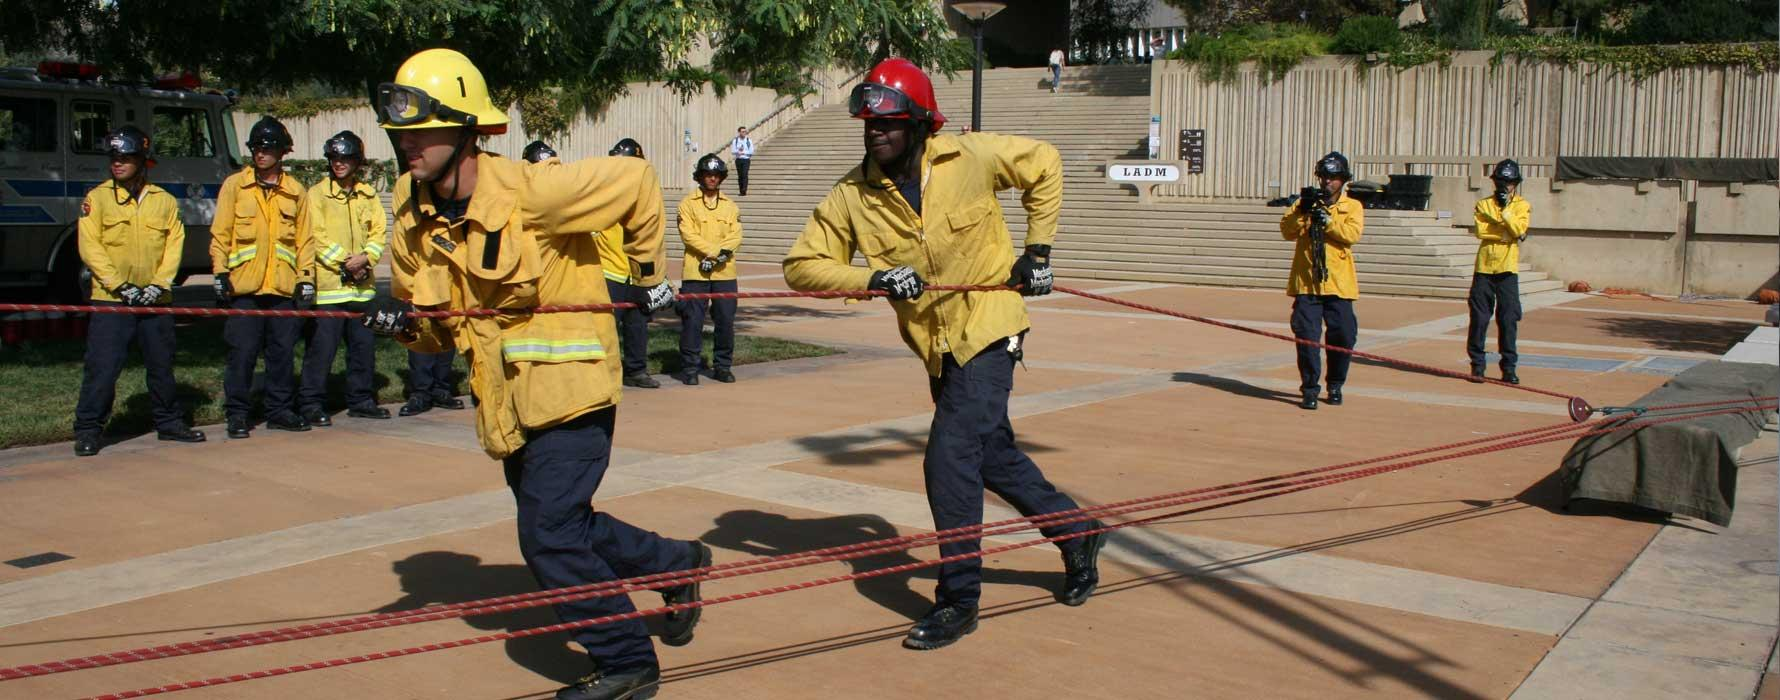 Fire Academy students pulling a rope